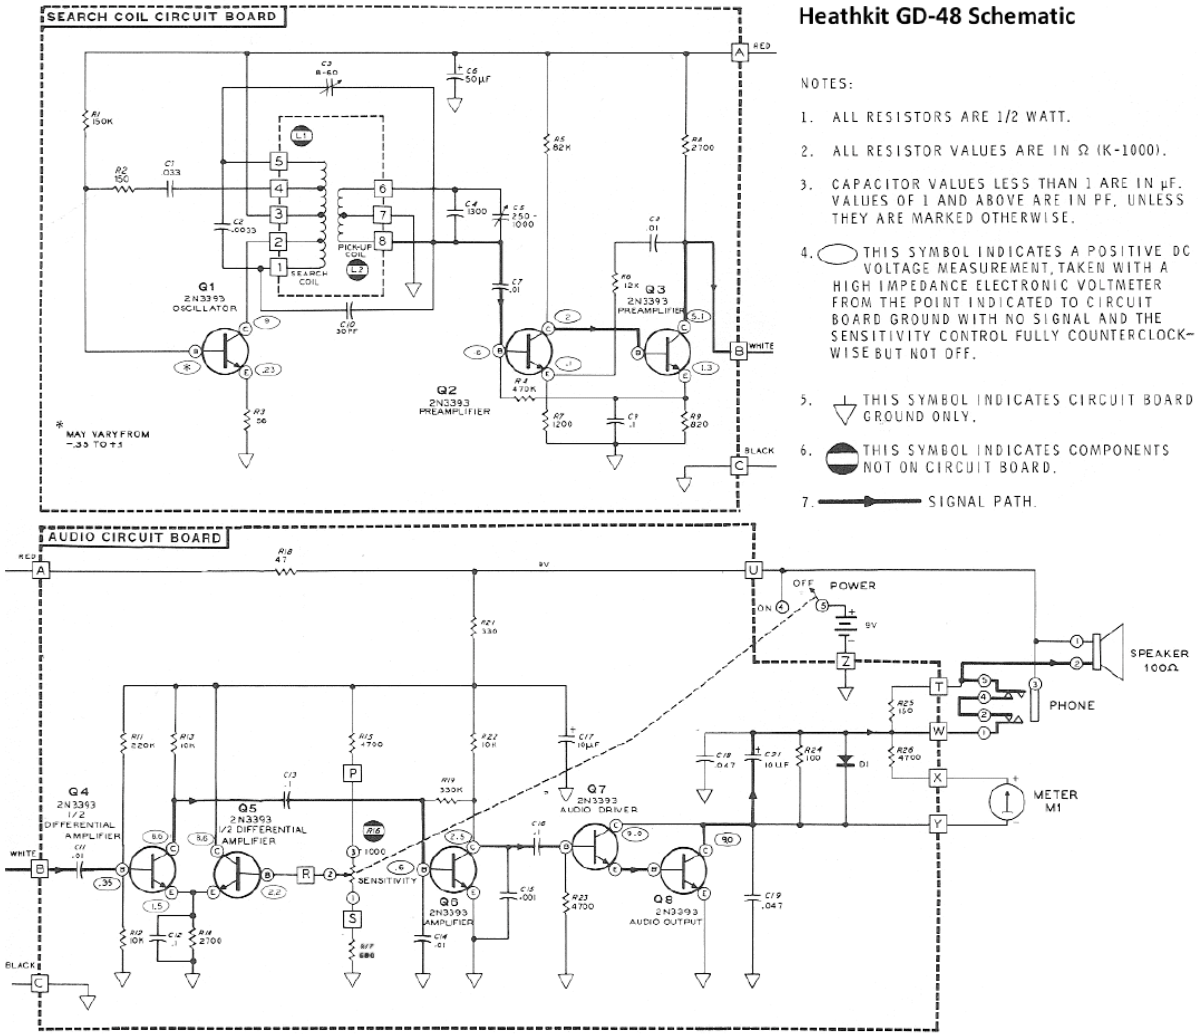 Schematic Diagram Of The Heathkit Gd 48 Metal Locator Metal Detector Detector Metal